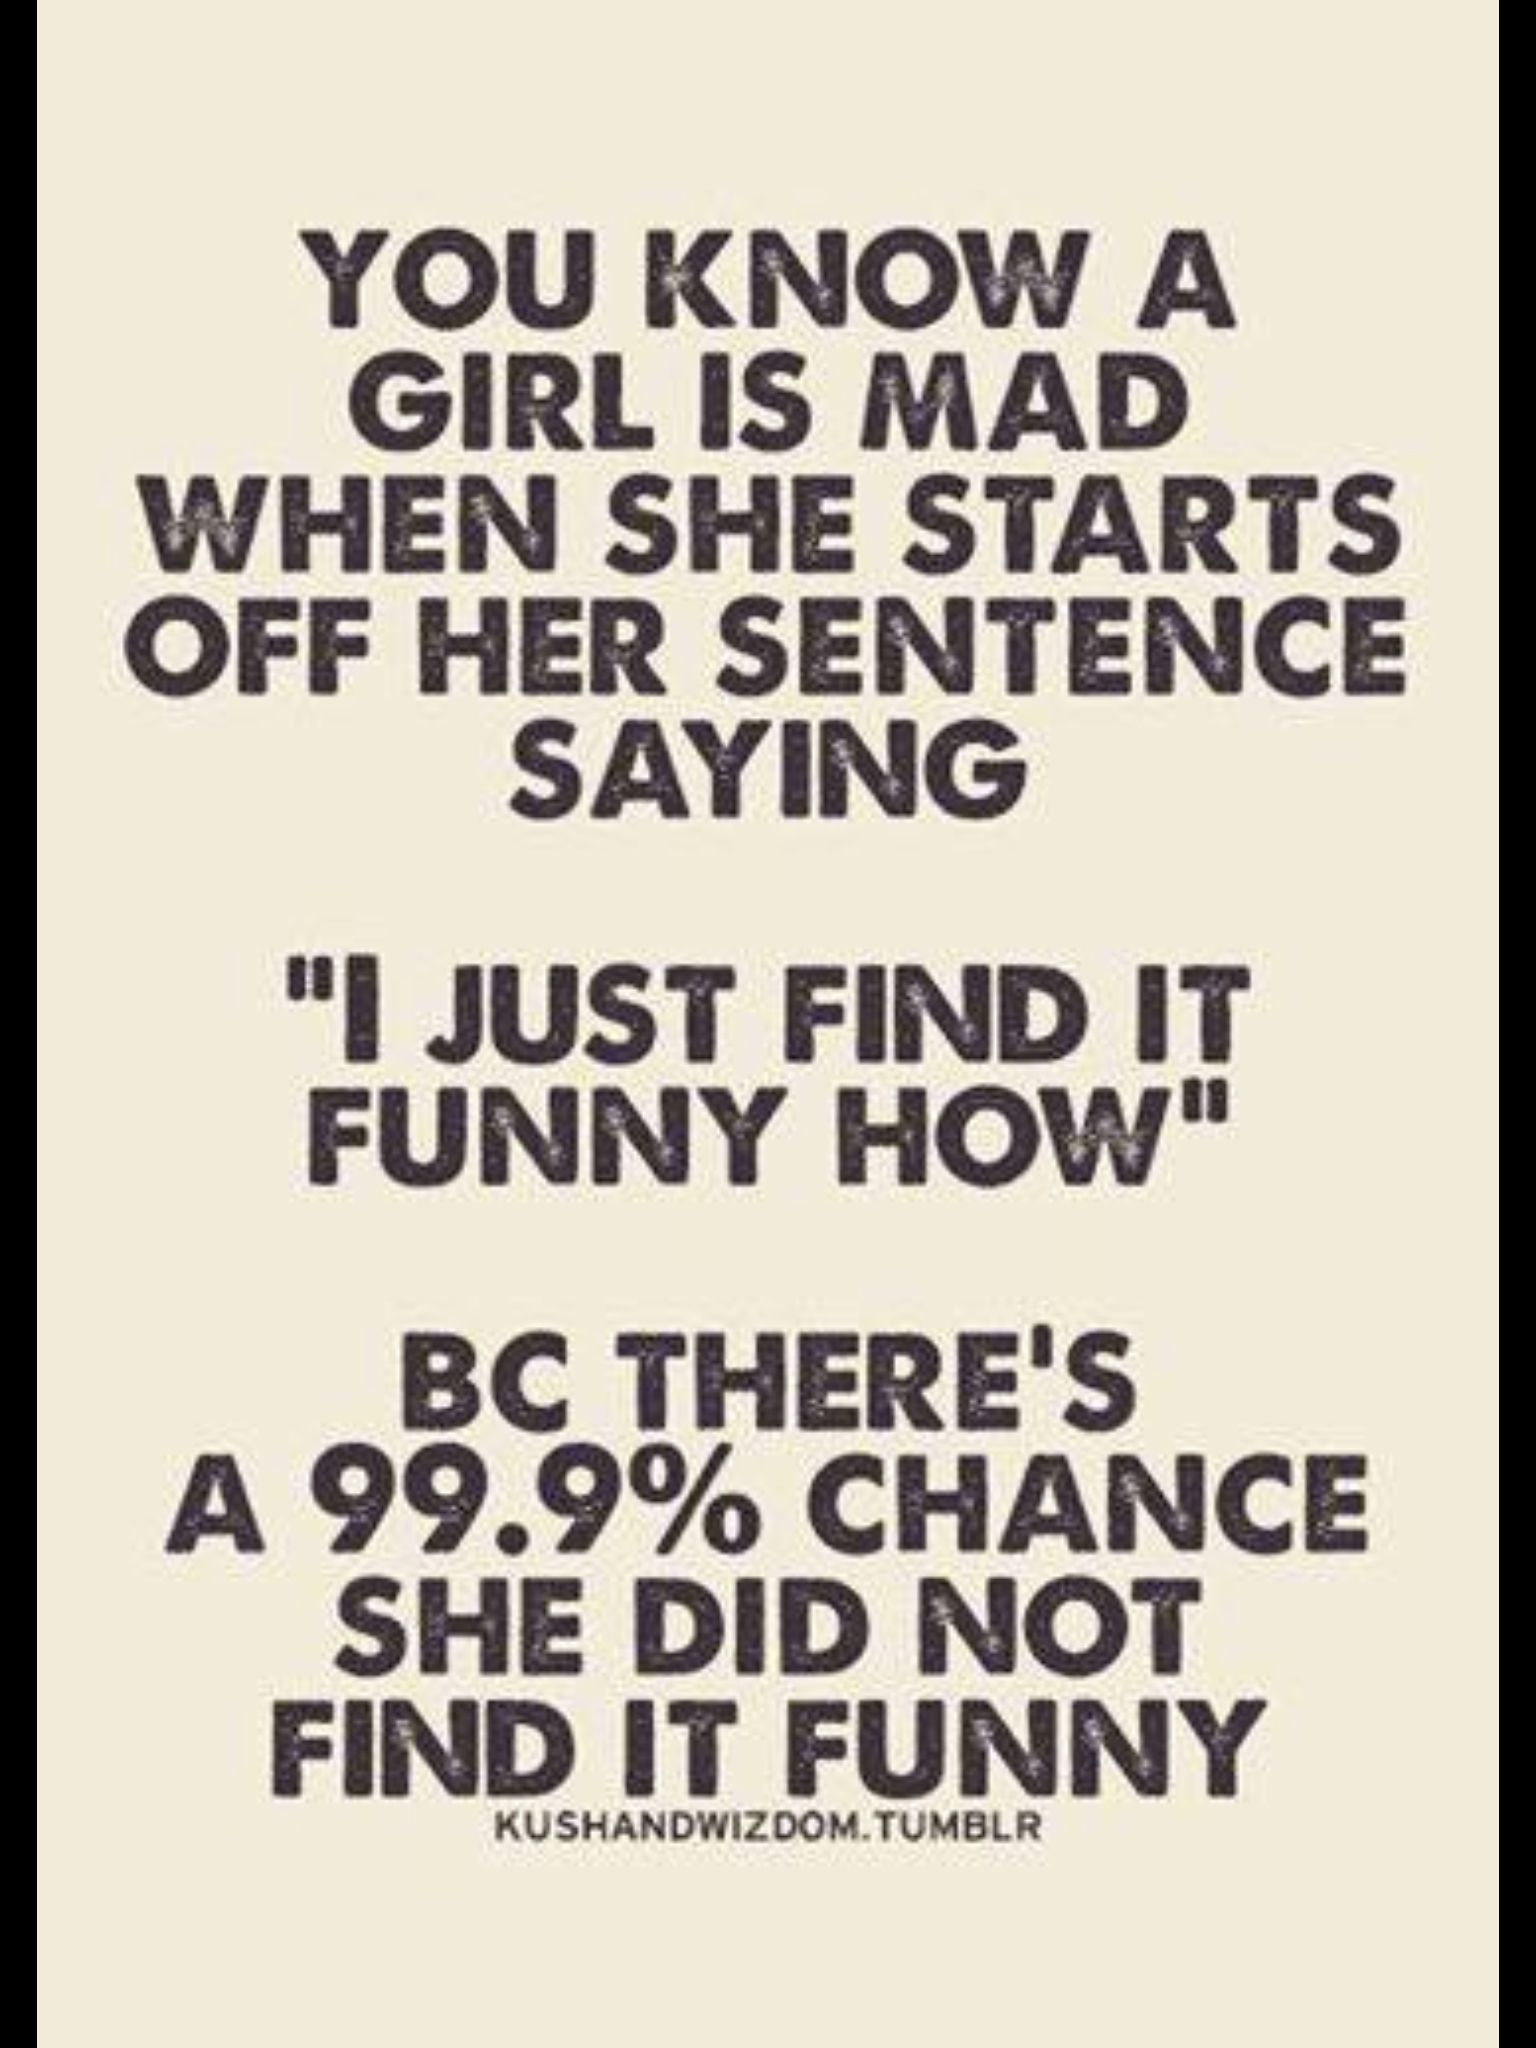 There S A 99 9 Chance She Did Not Find It Funny Funniest Quotes Ever Funny Quotes Fun Quotes Funny